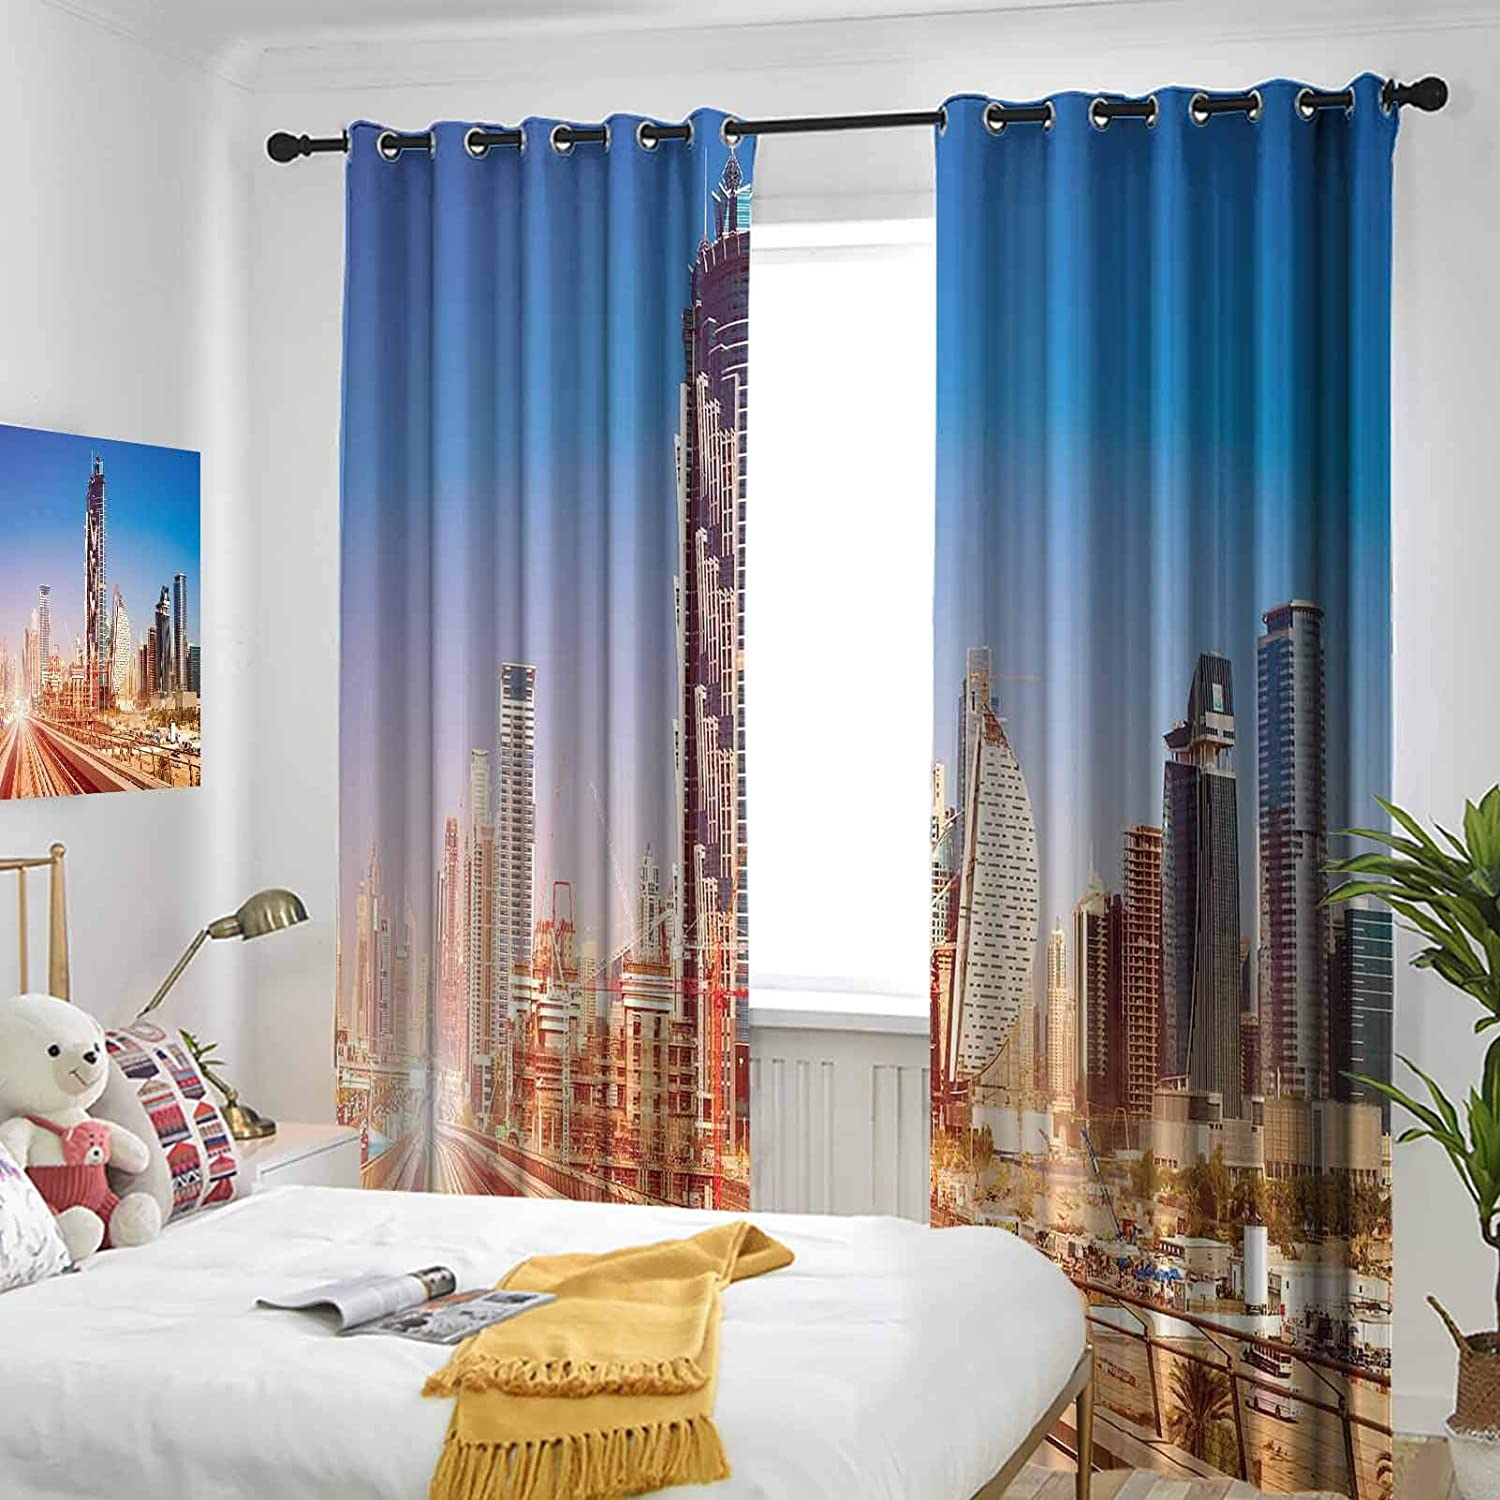 Urban Grommet Curtains for Girls Room Line Jacksonville Mall Duba in Special price a limited time Modern Subway